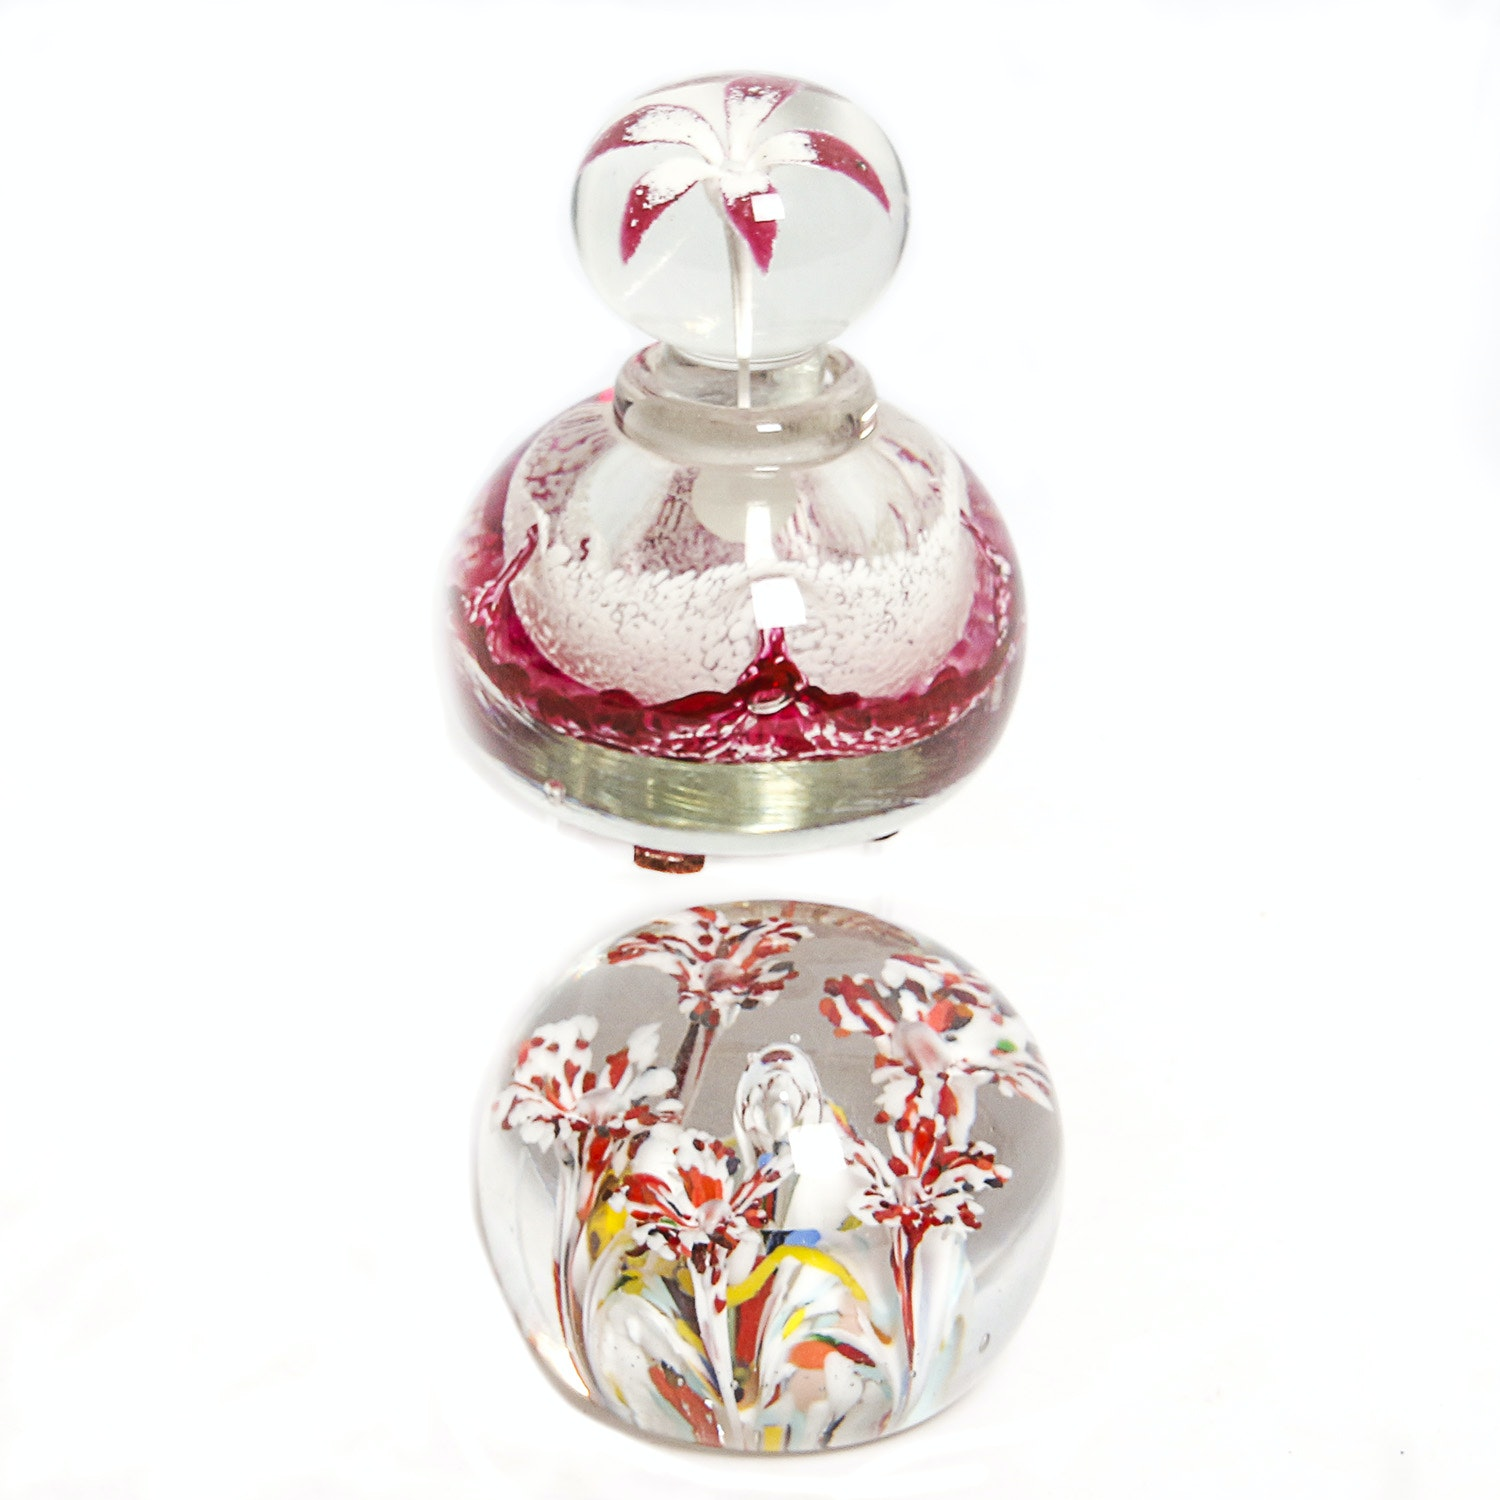 Art Glass Paperweight and Perfume Bottle